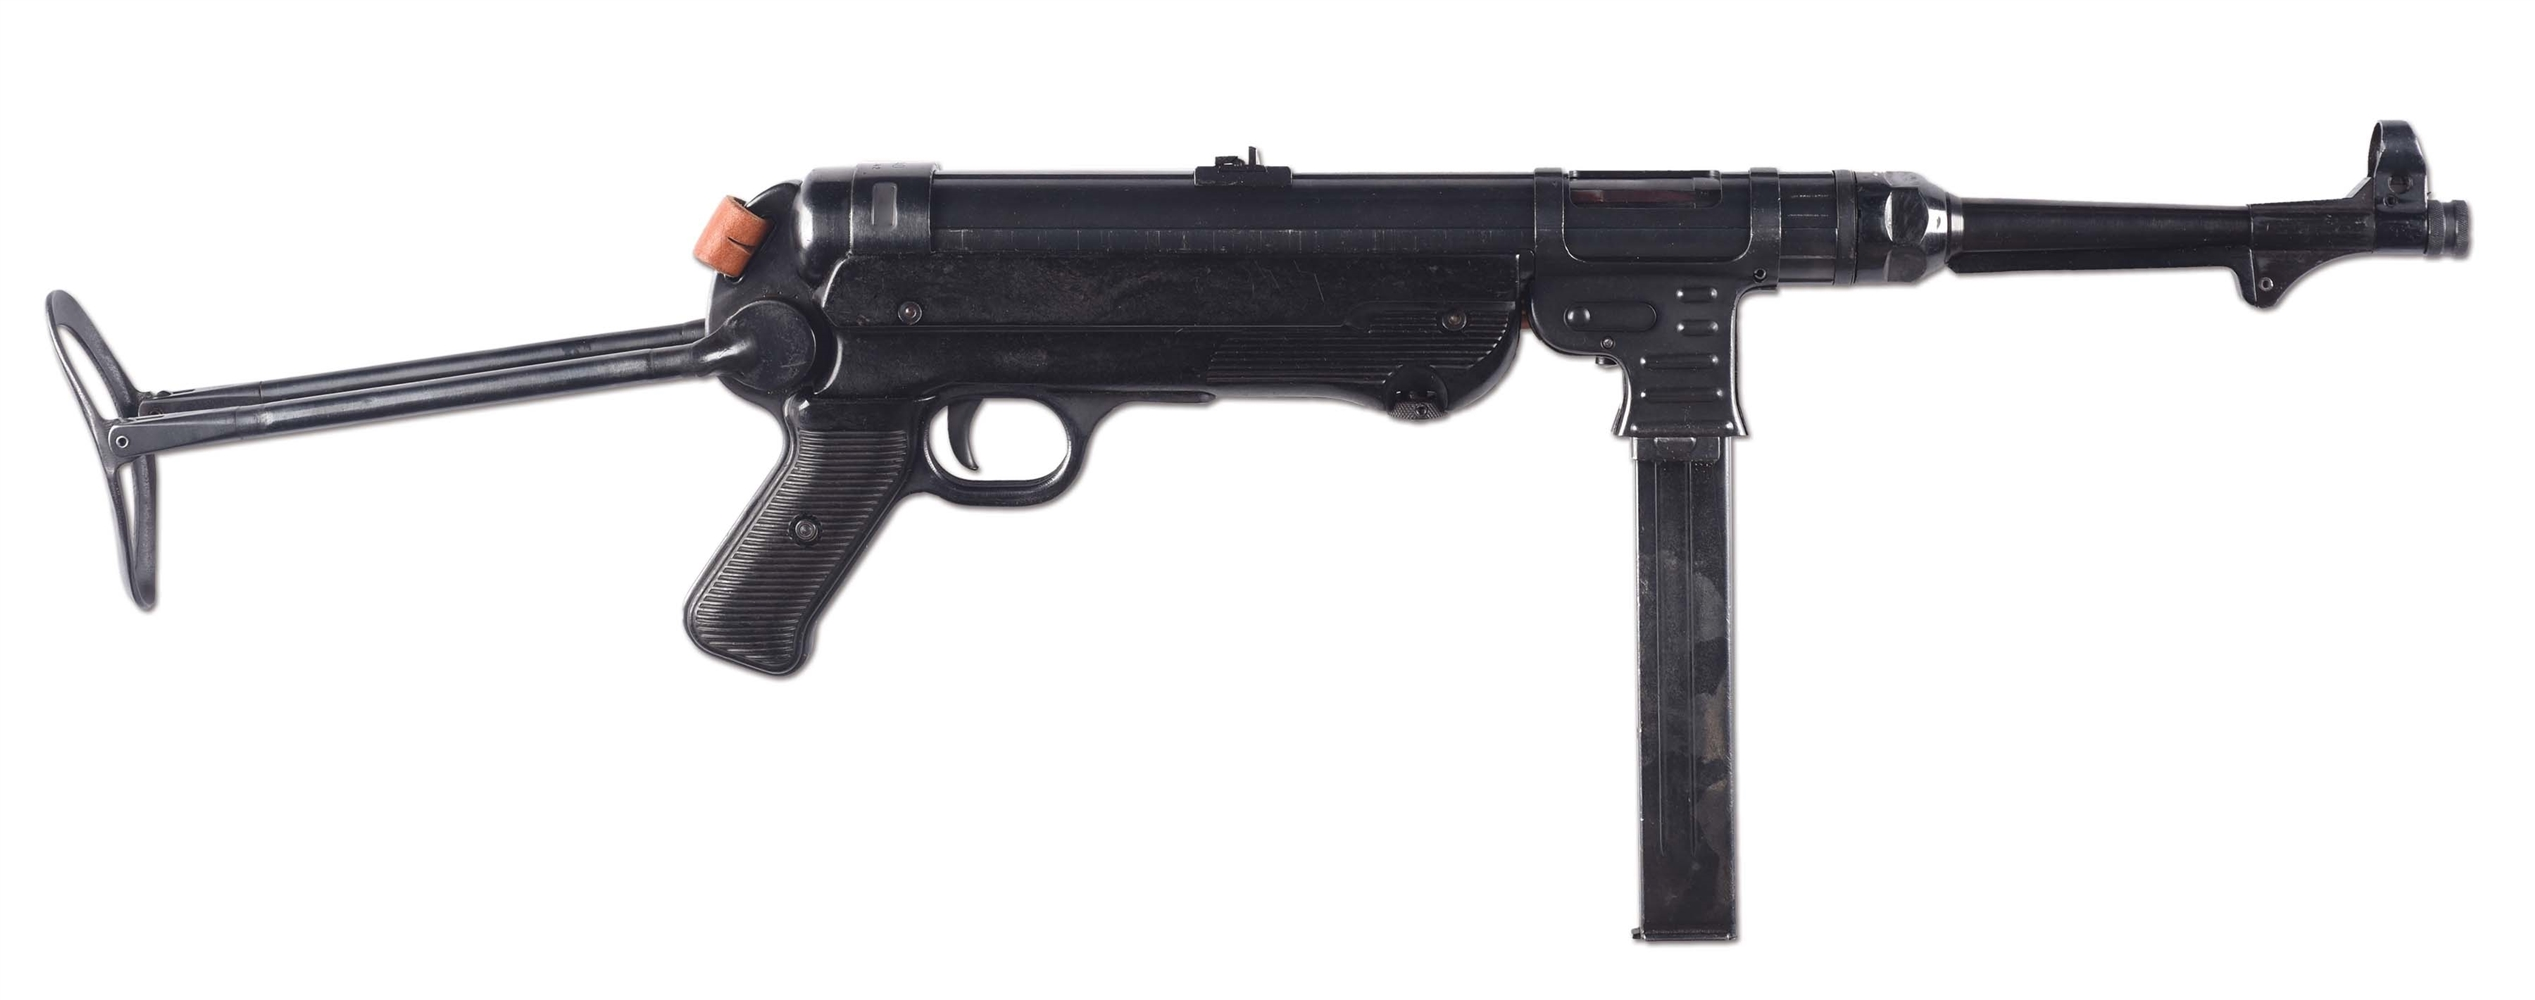 (N) EXCEPTIONAL CONDITION GERMAN MP-40 ON WILSON REGISTERED TUBE MACHINE GUN (FULLY TRANSFERABLE).